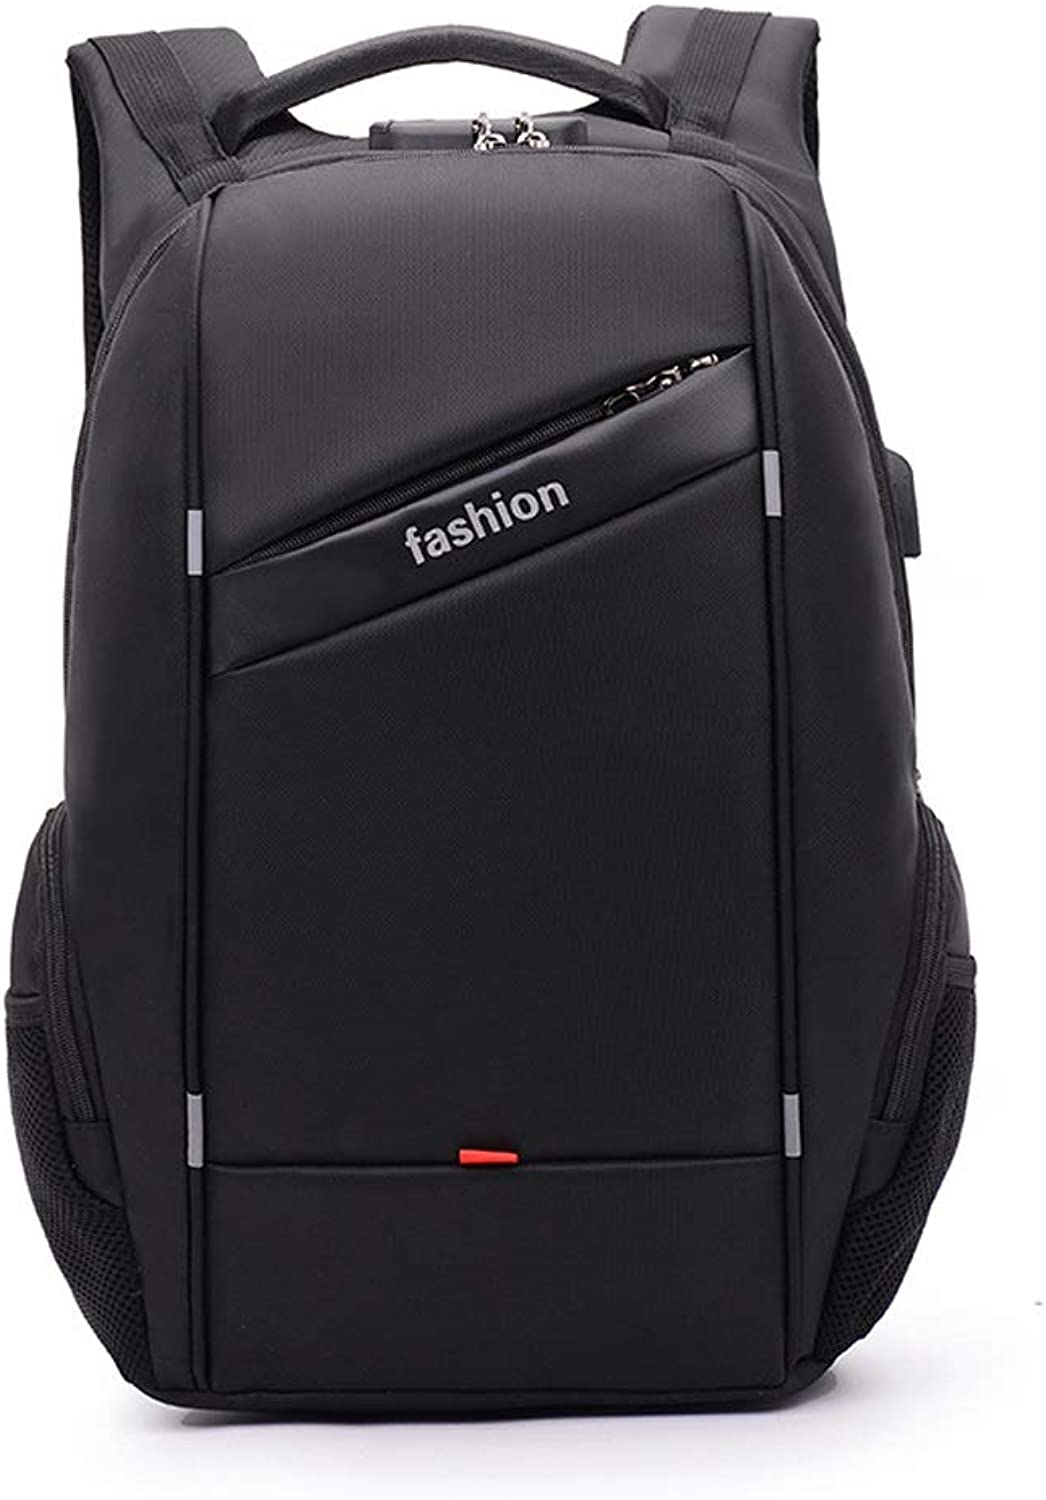 Travel Laptop Backpack, AntiTheft Backpack with Lock and USB Charging Interface and Headphone Jack, LargeCapacity Business Laptop Backpack for 15.6inch Laptop